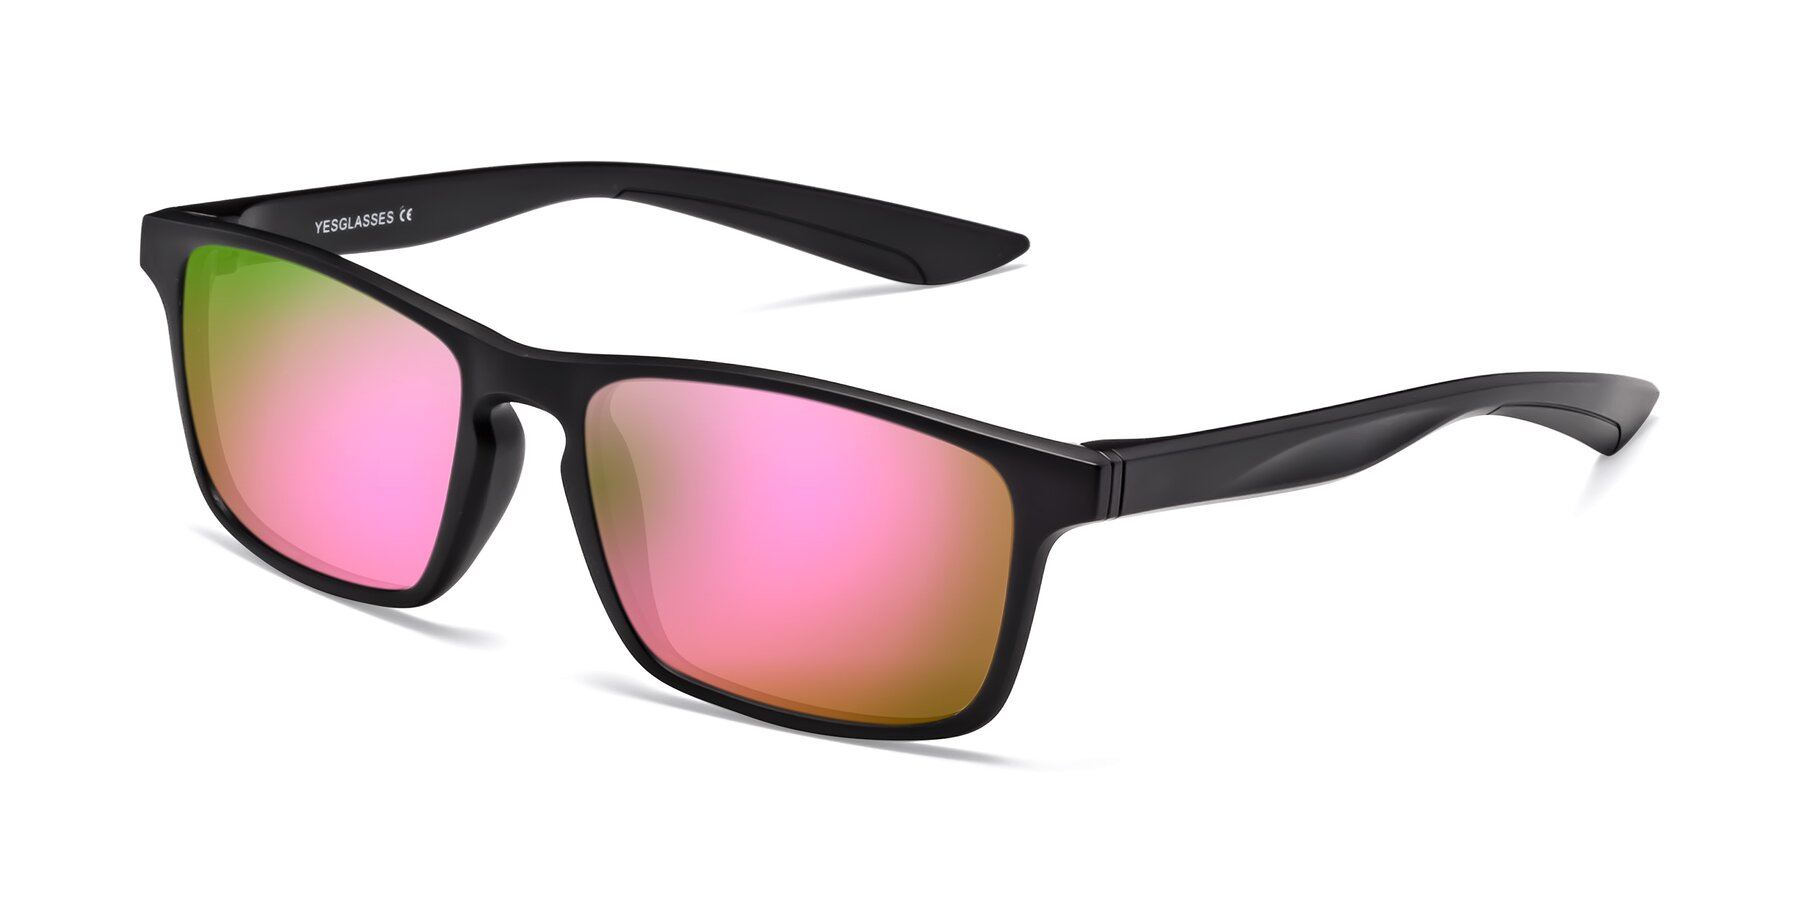 Angle of Passion in Matte Black with Pink Mirrored Lenses